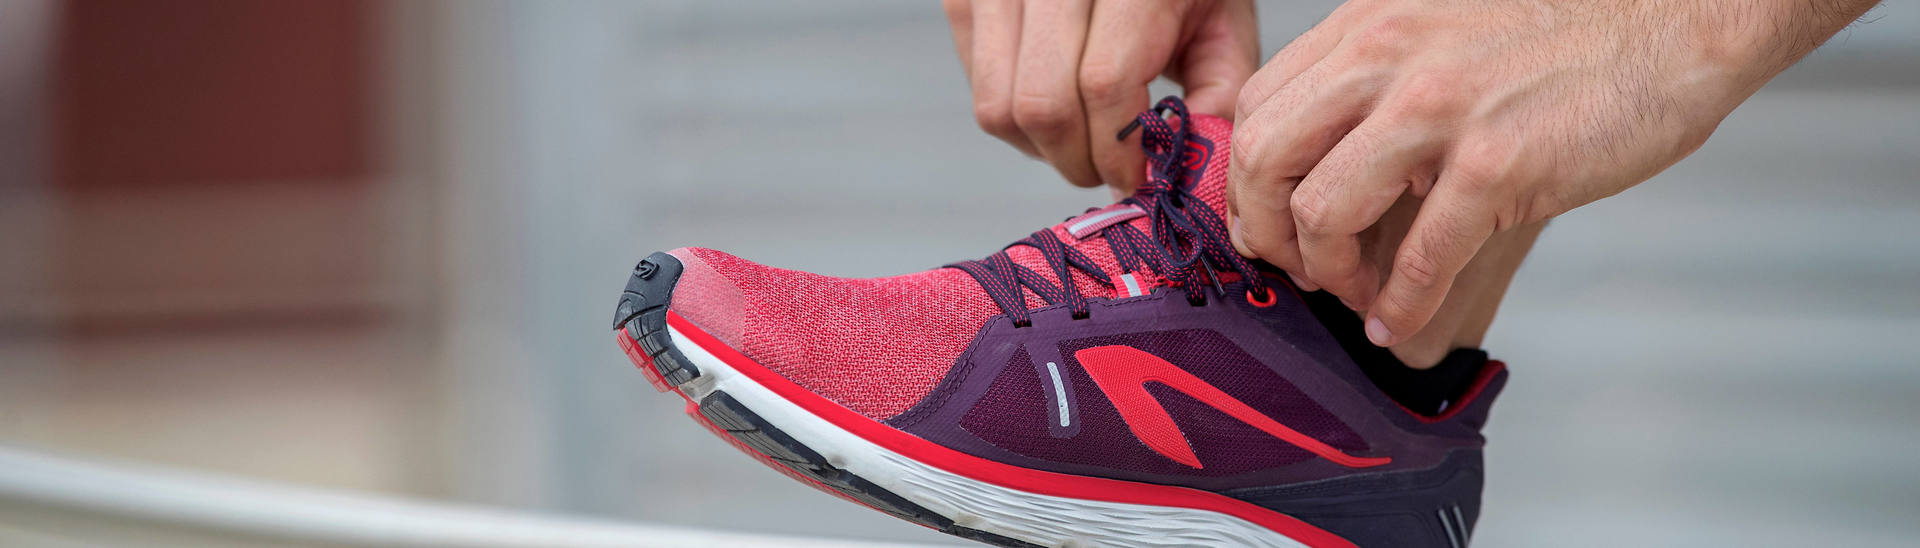 How To Take Care Of Your Running Shoes